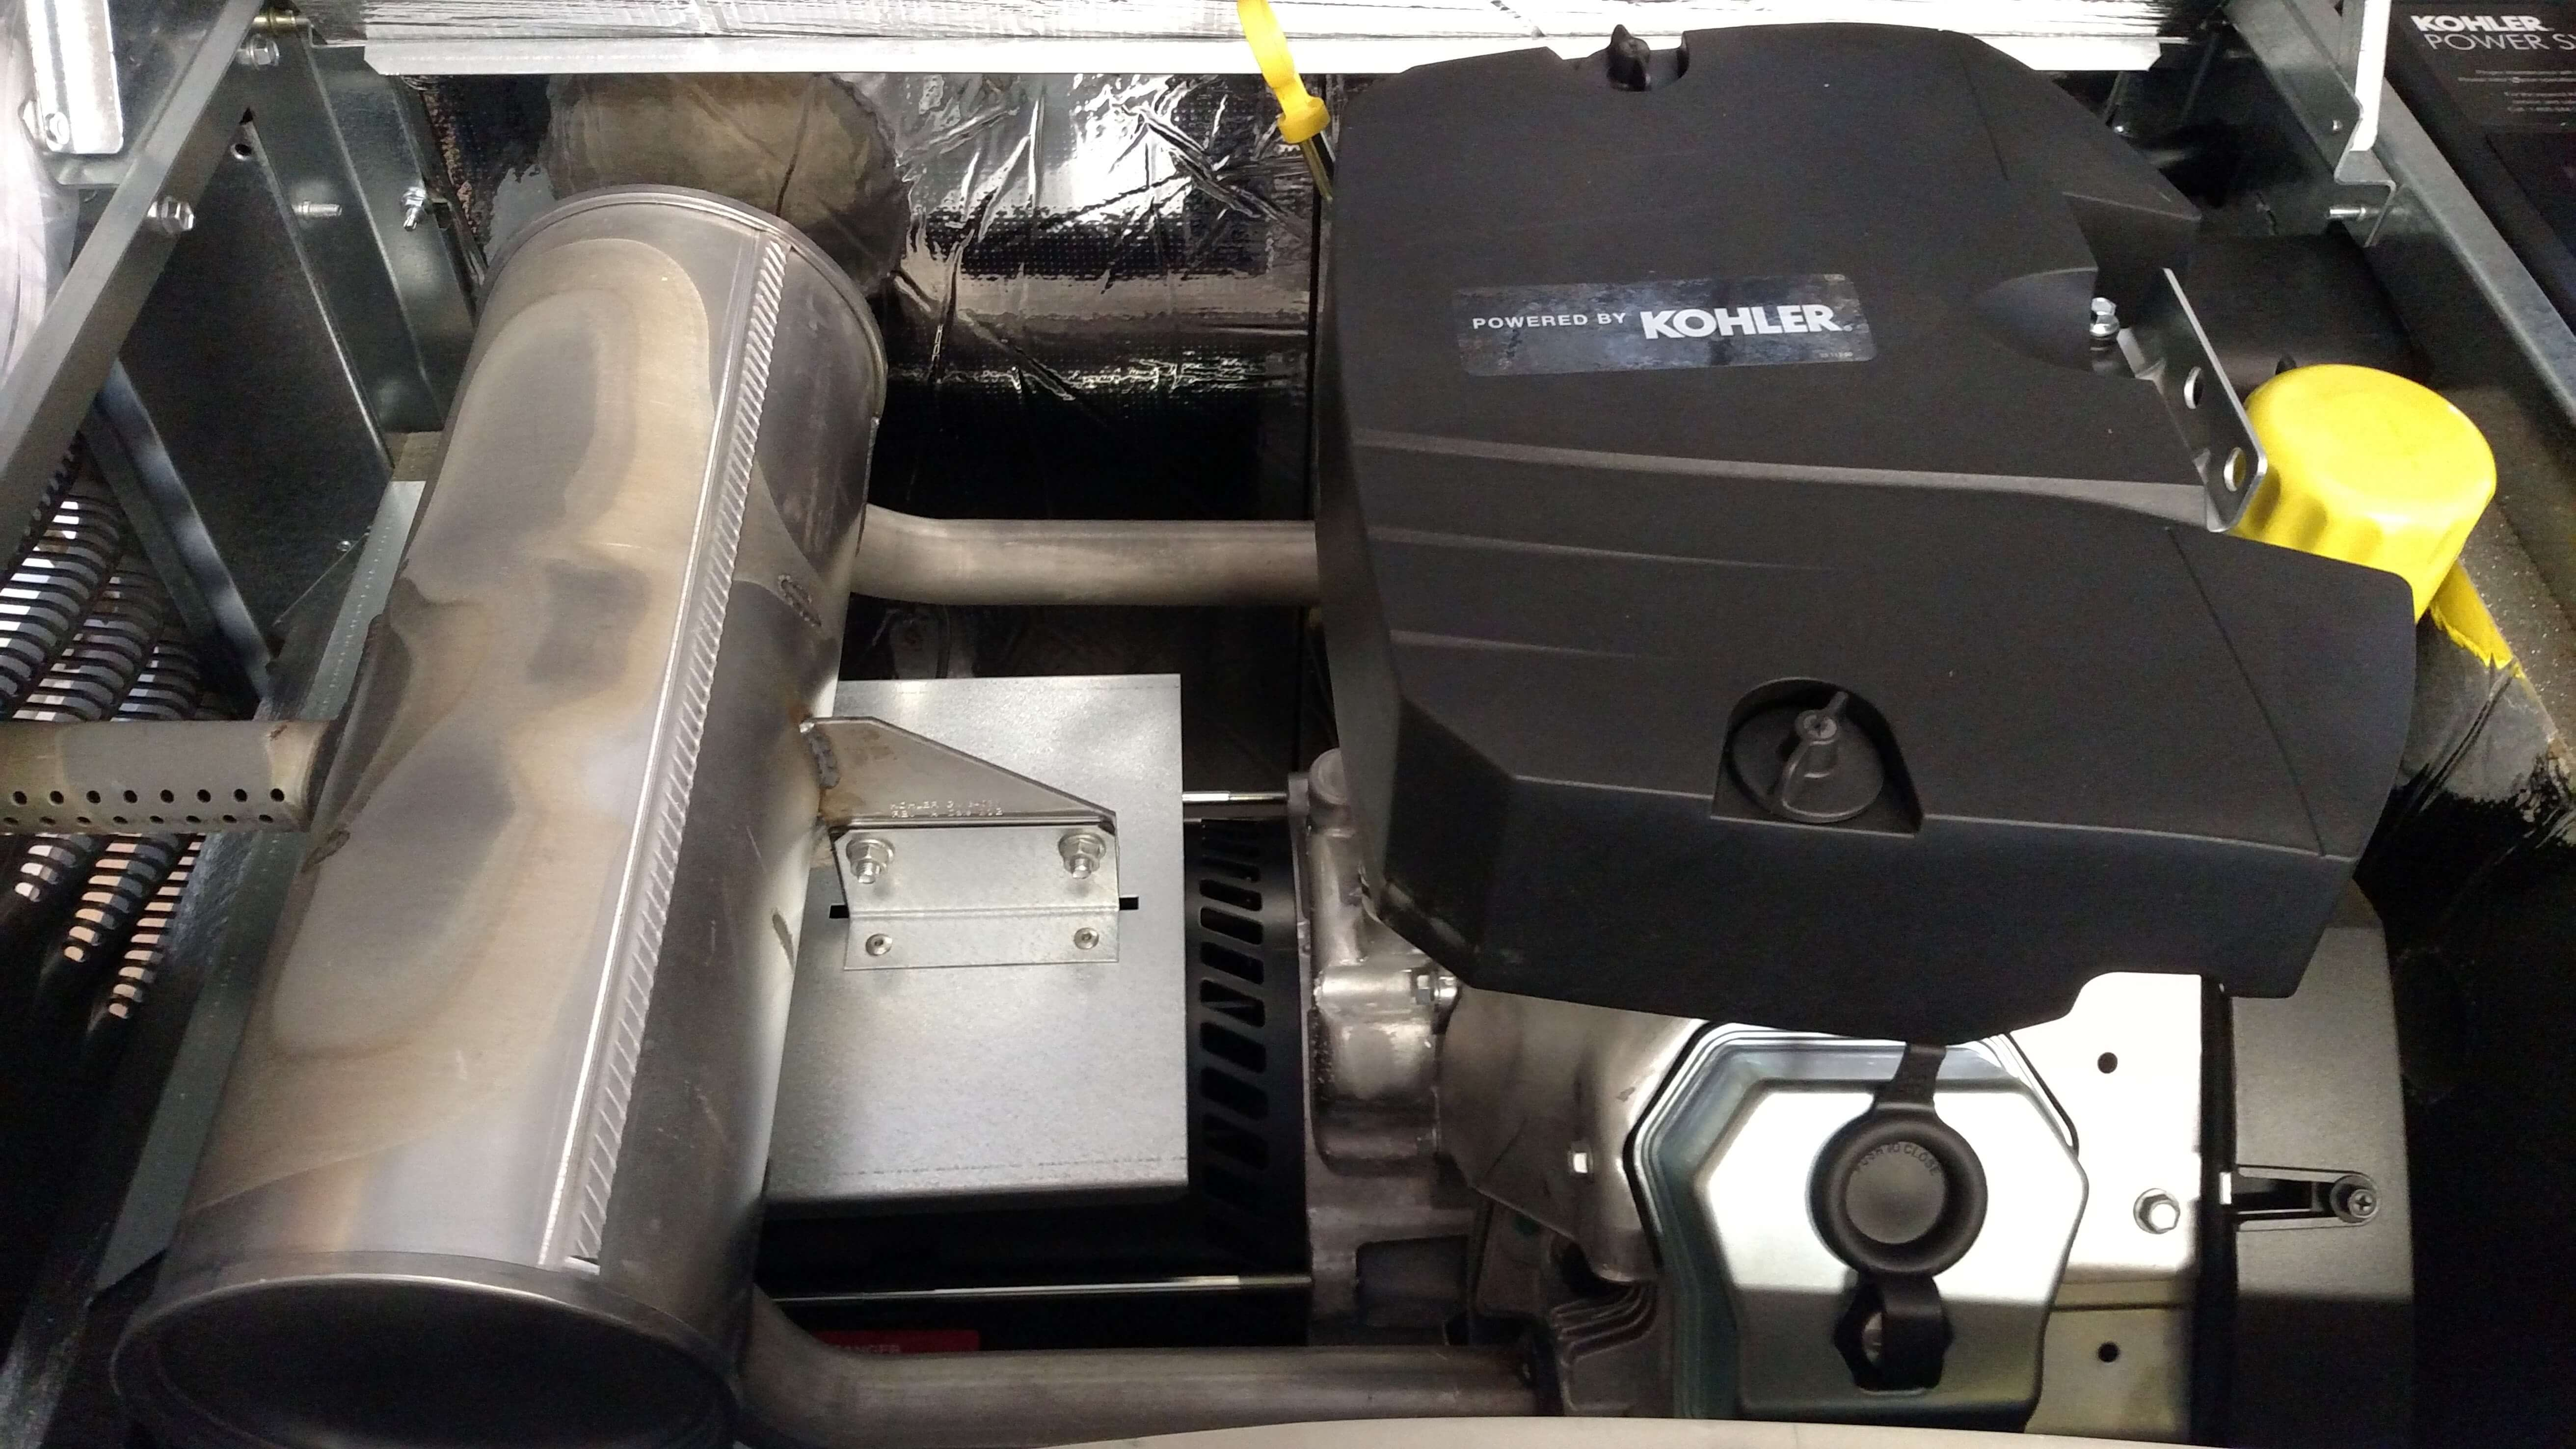 Kohler Generators - Beating the competition in price and quality